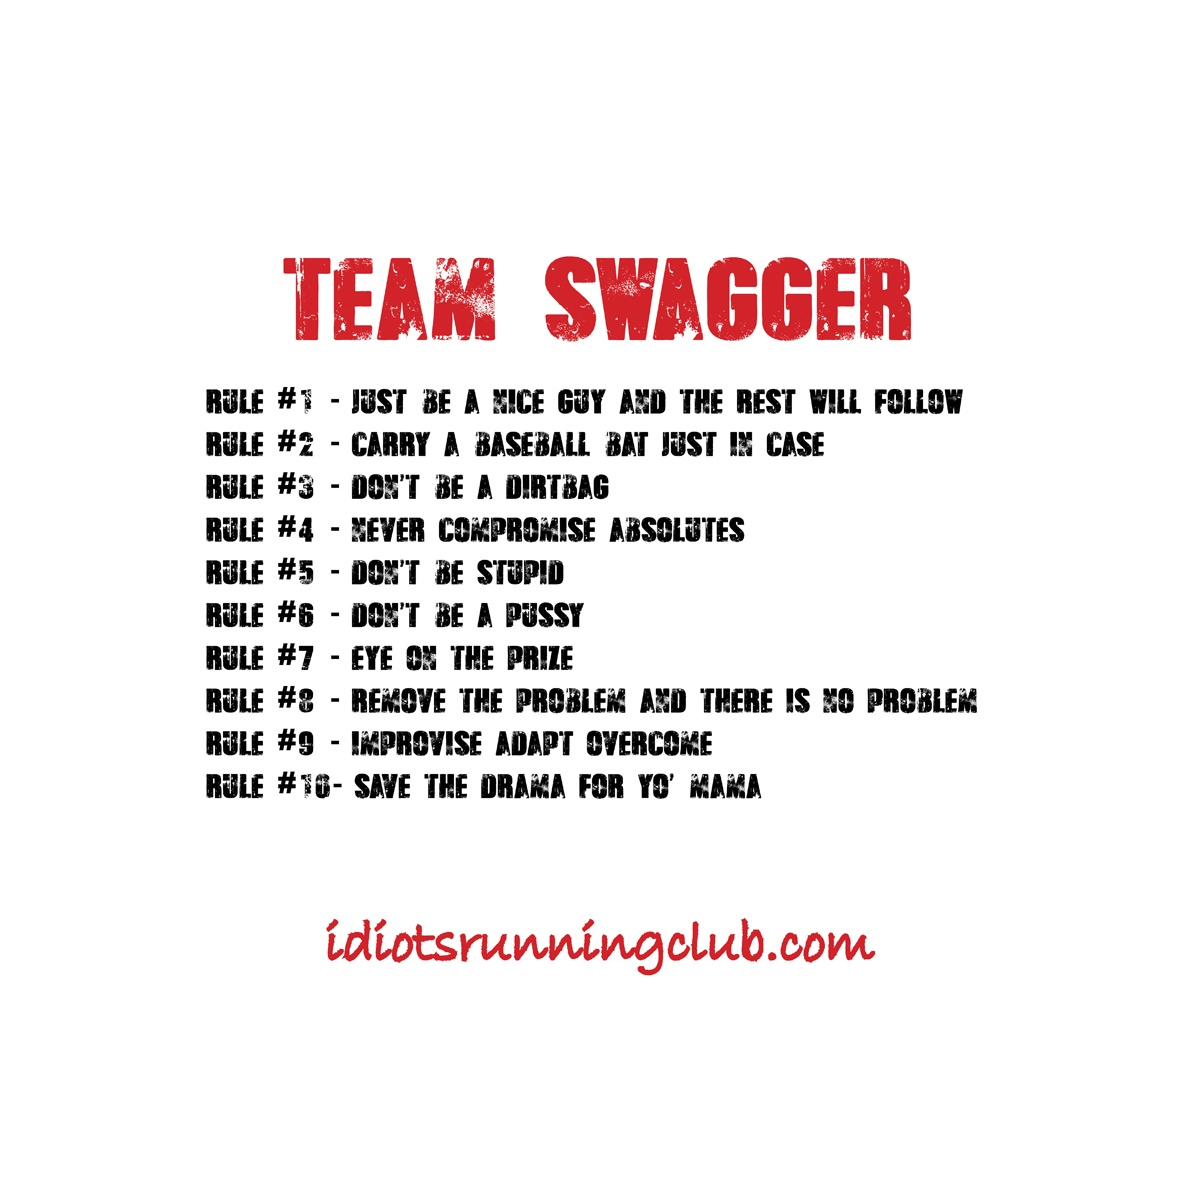 team_swagger_rules_1236359587